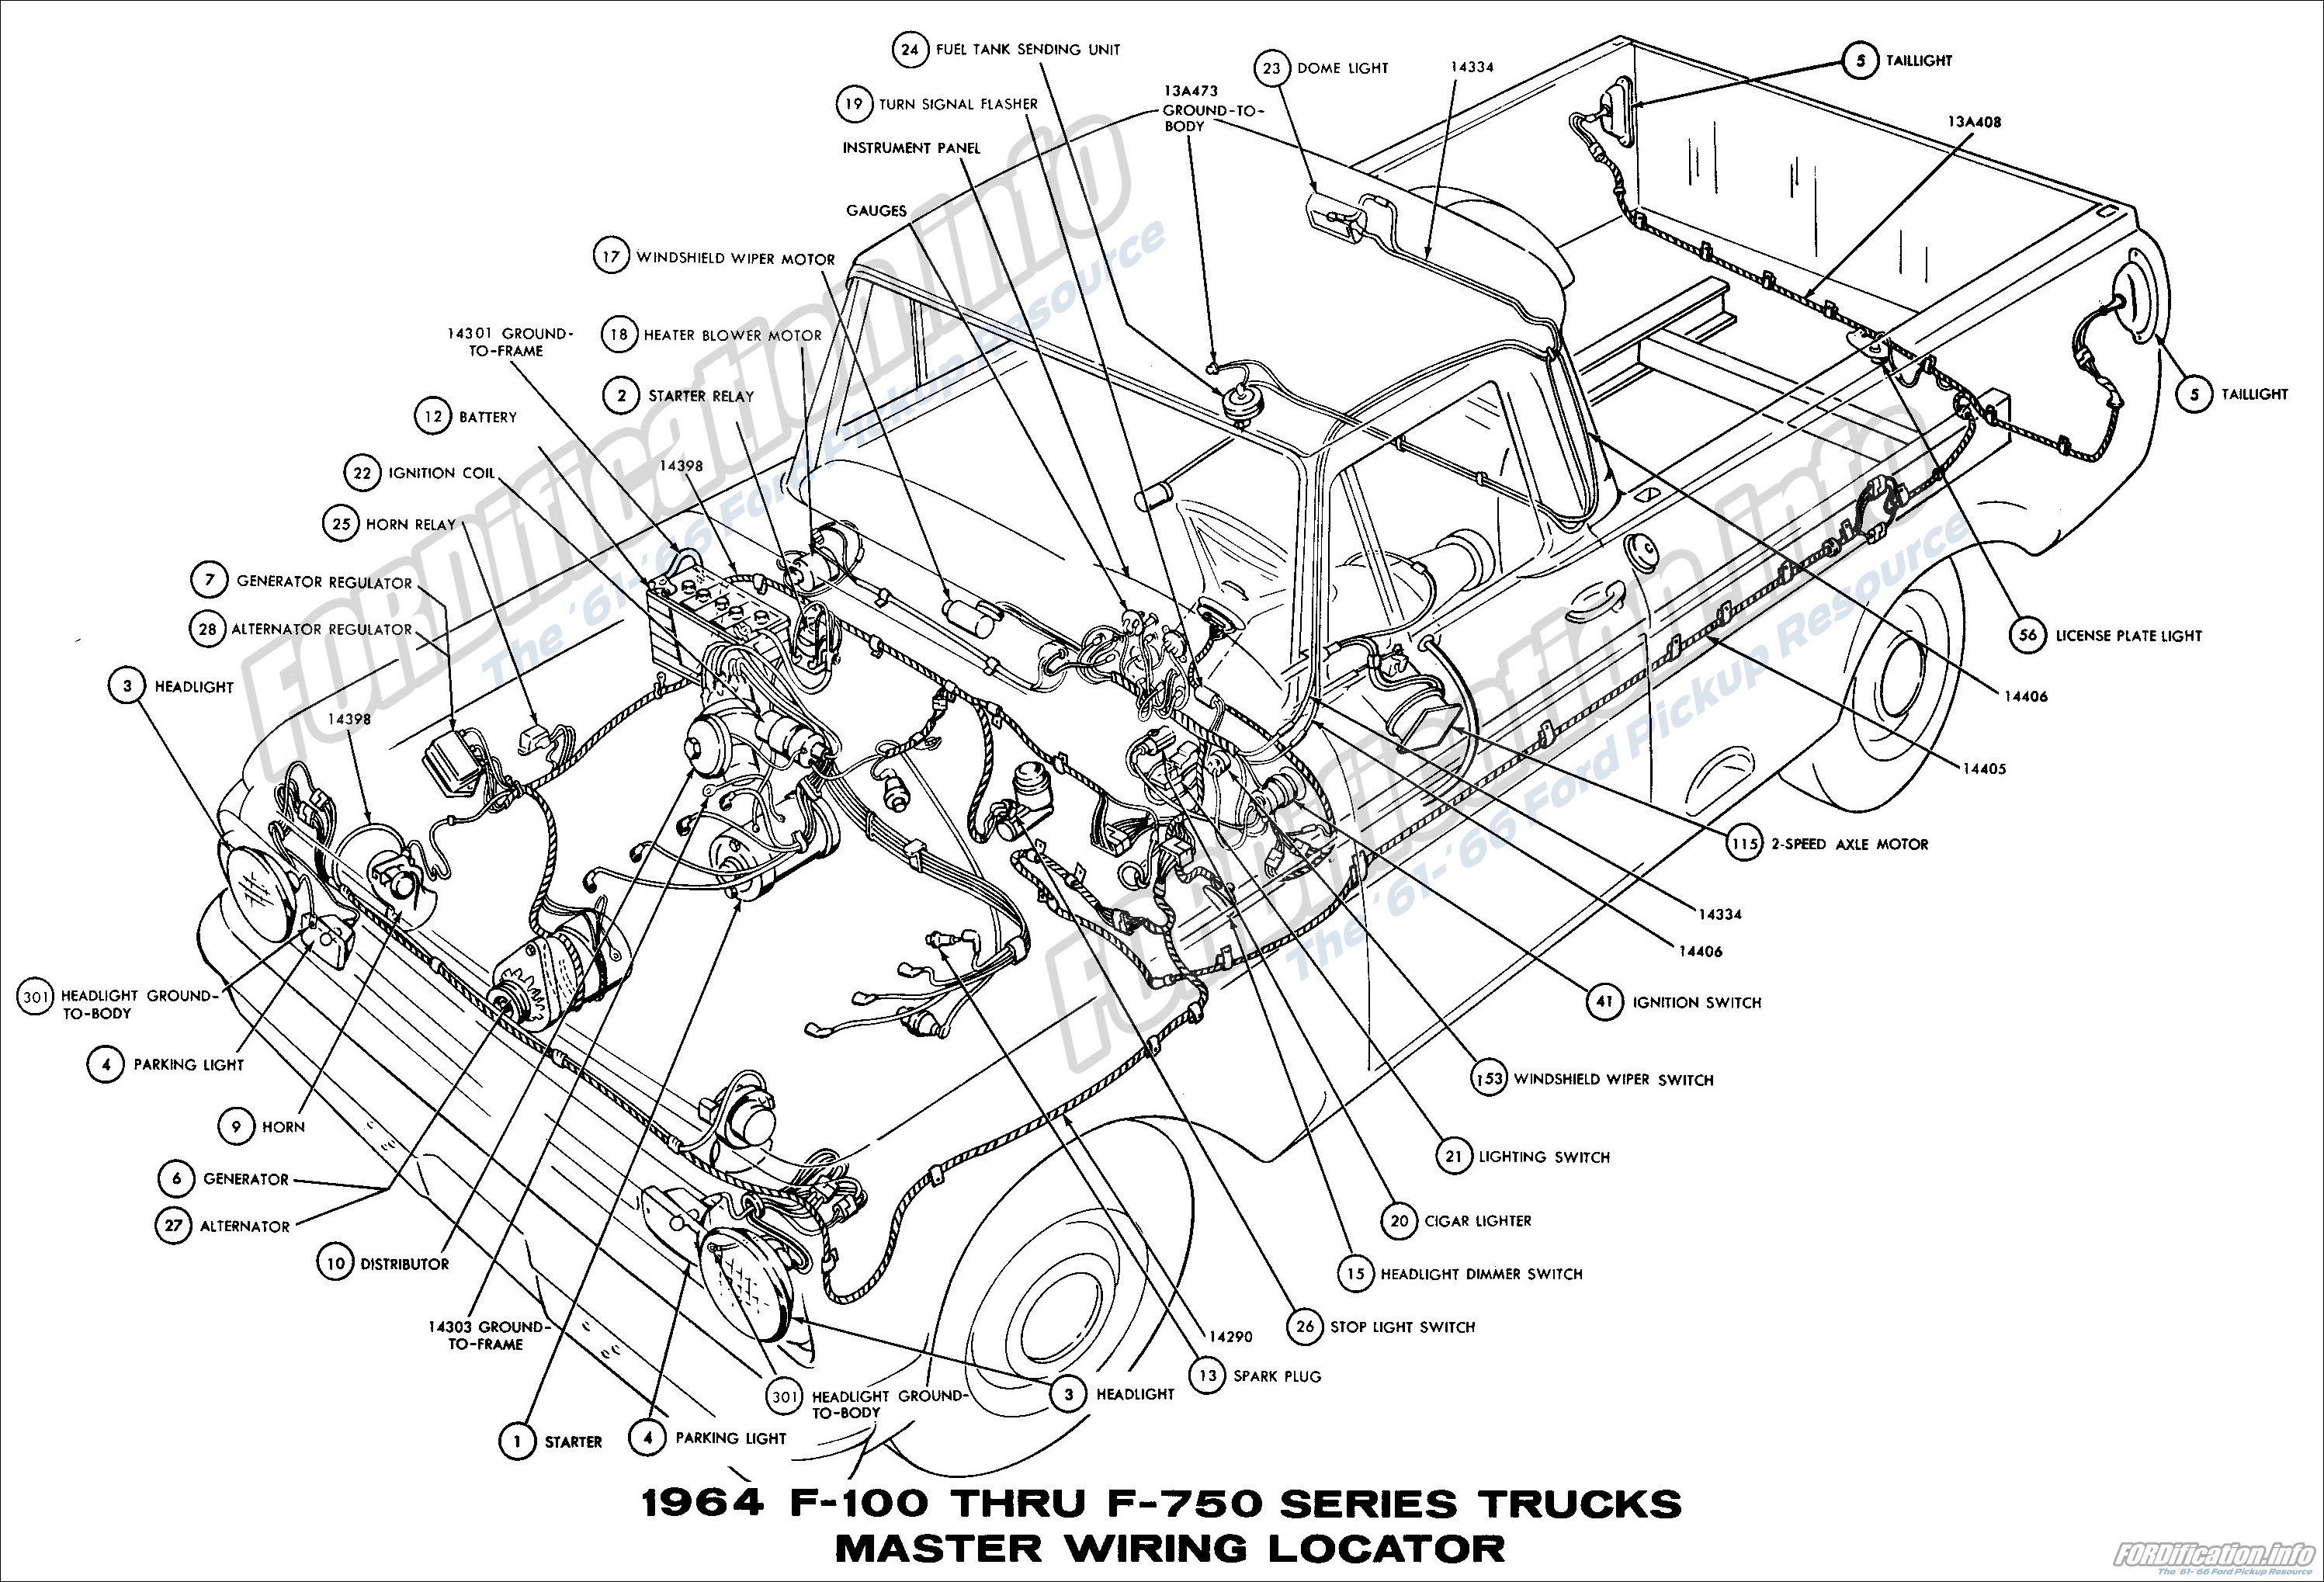 1964 ford truck wiring diagrams fordification info the 61 66 rh fordification info 1947 ford truck wiring diagram 1977 ford truck wiring diagrams